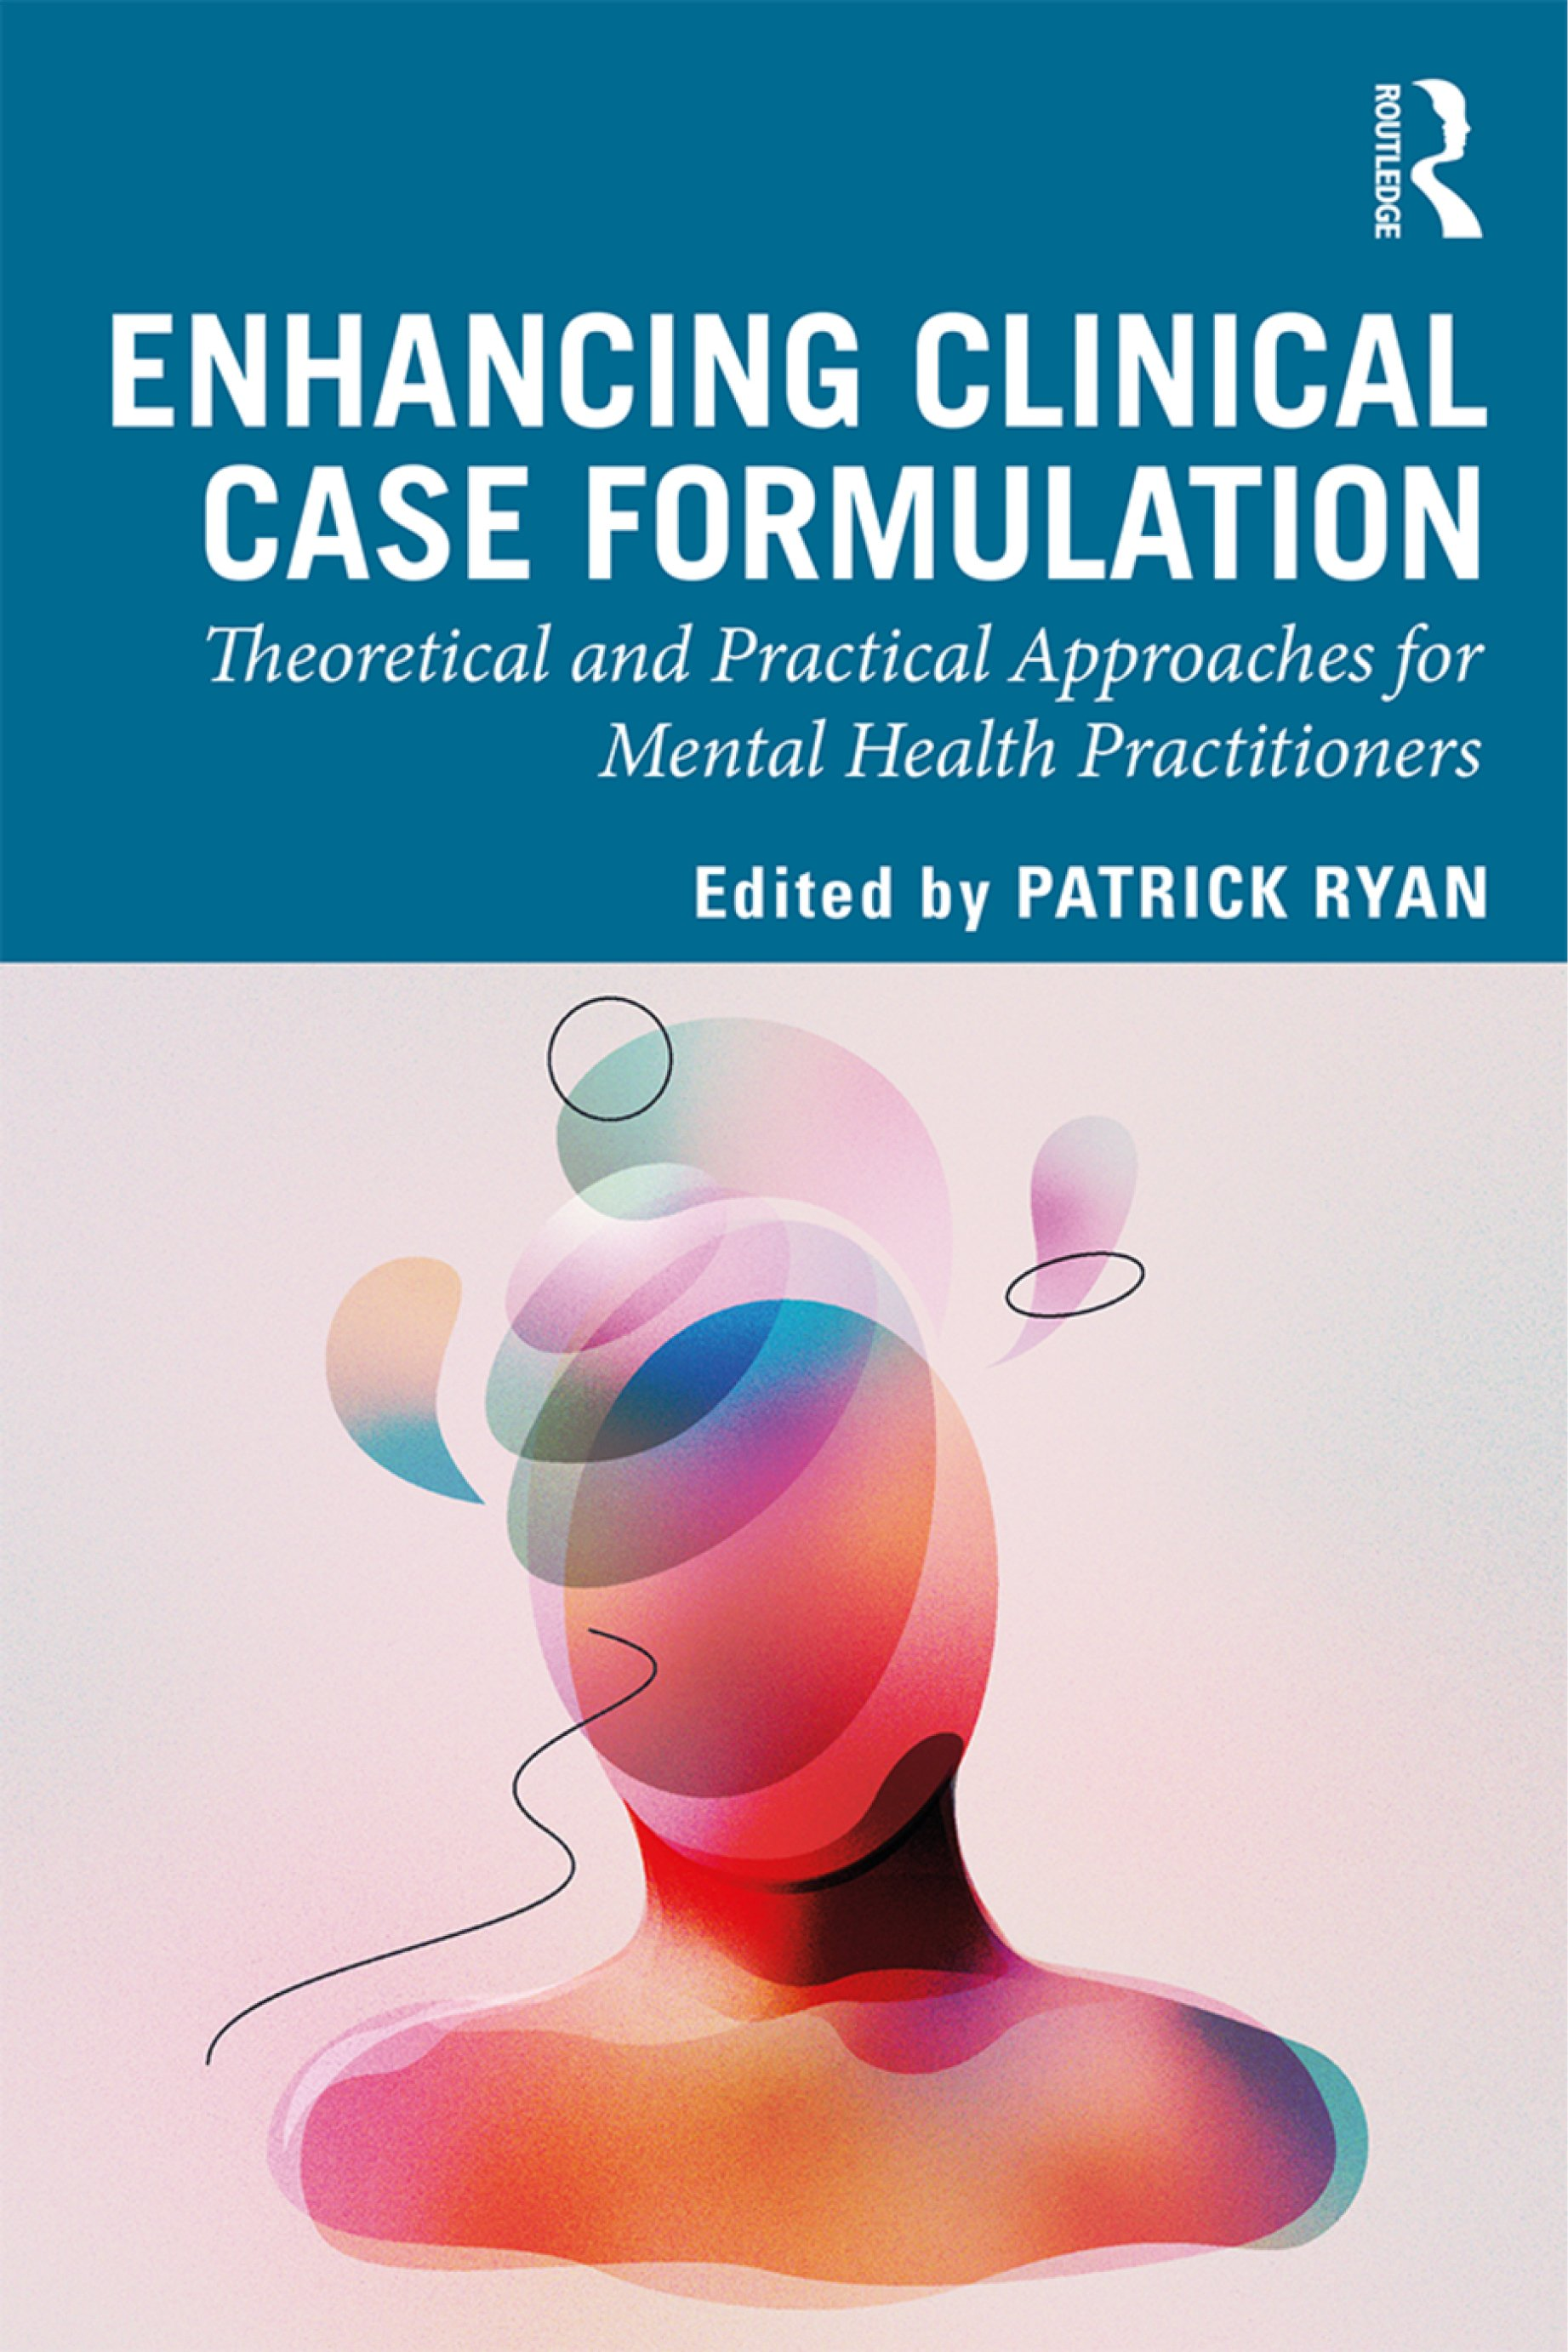 Enhancing Clinical Case Formulation